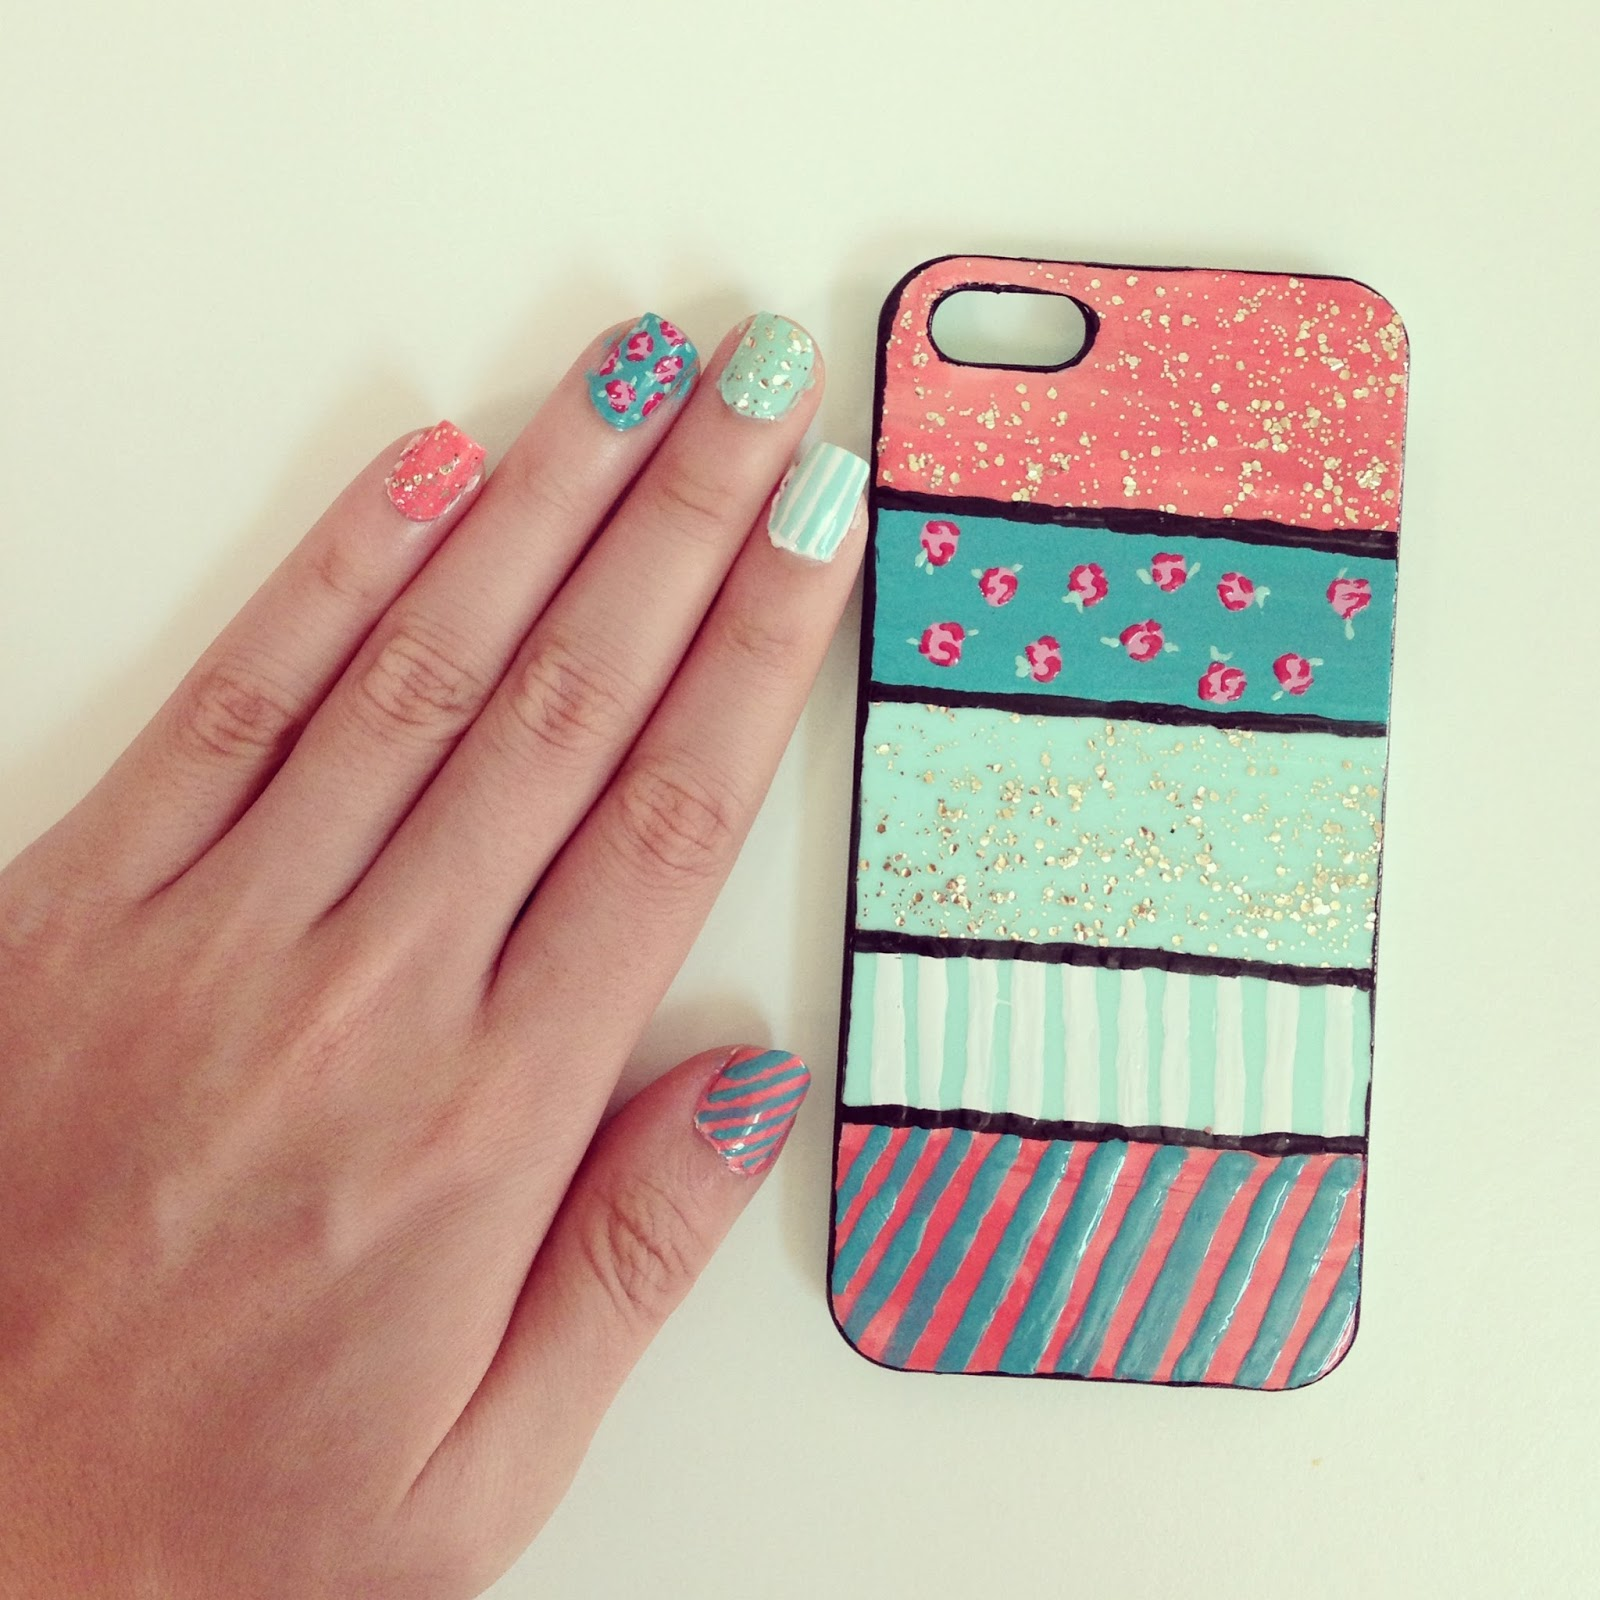 Diy Phone Cases For Cute 26 Easy Designs Home Design